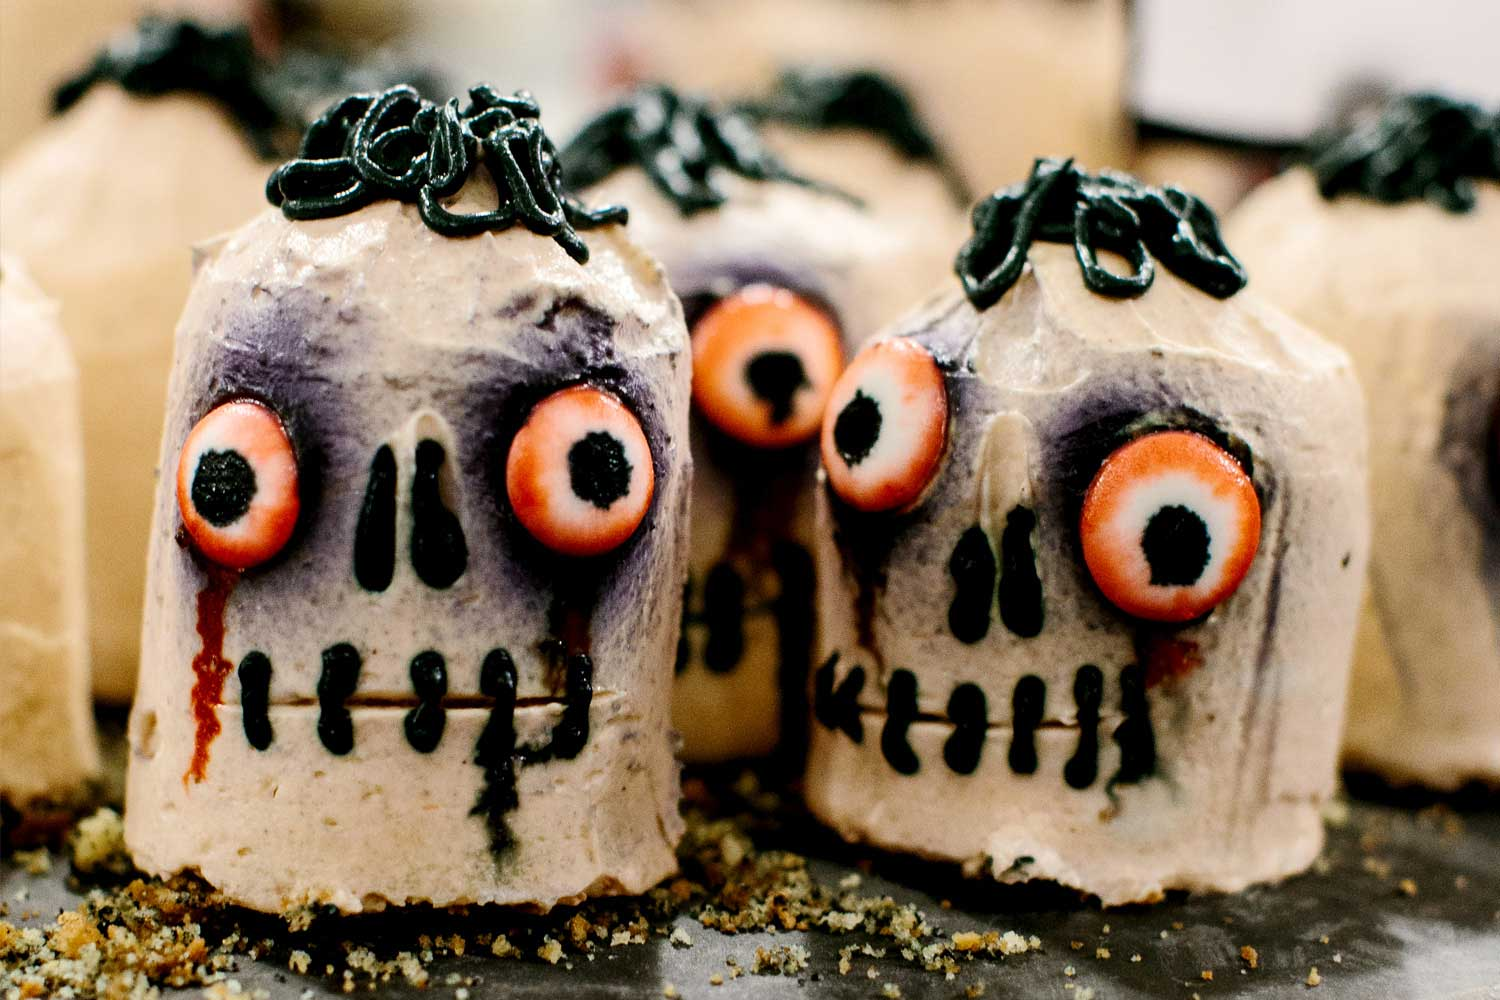 Desert dish made to look like skulls, in keeping with the macabre theme of the event